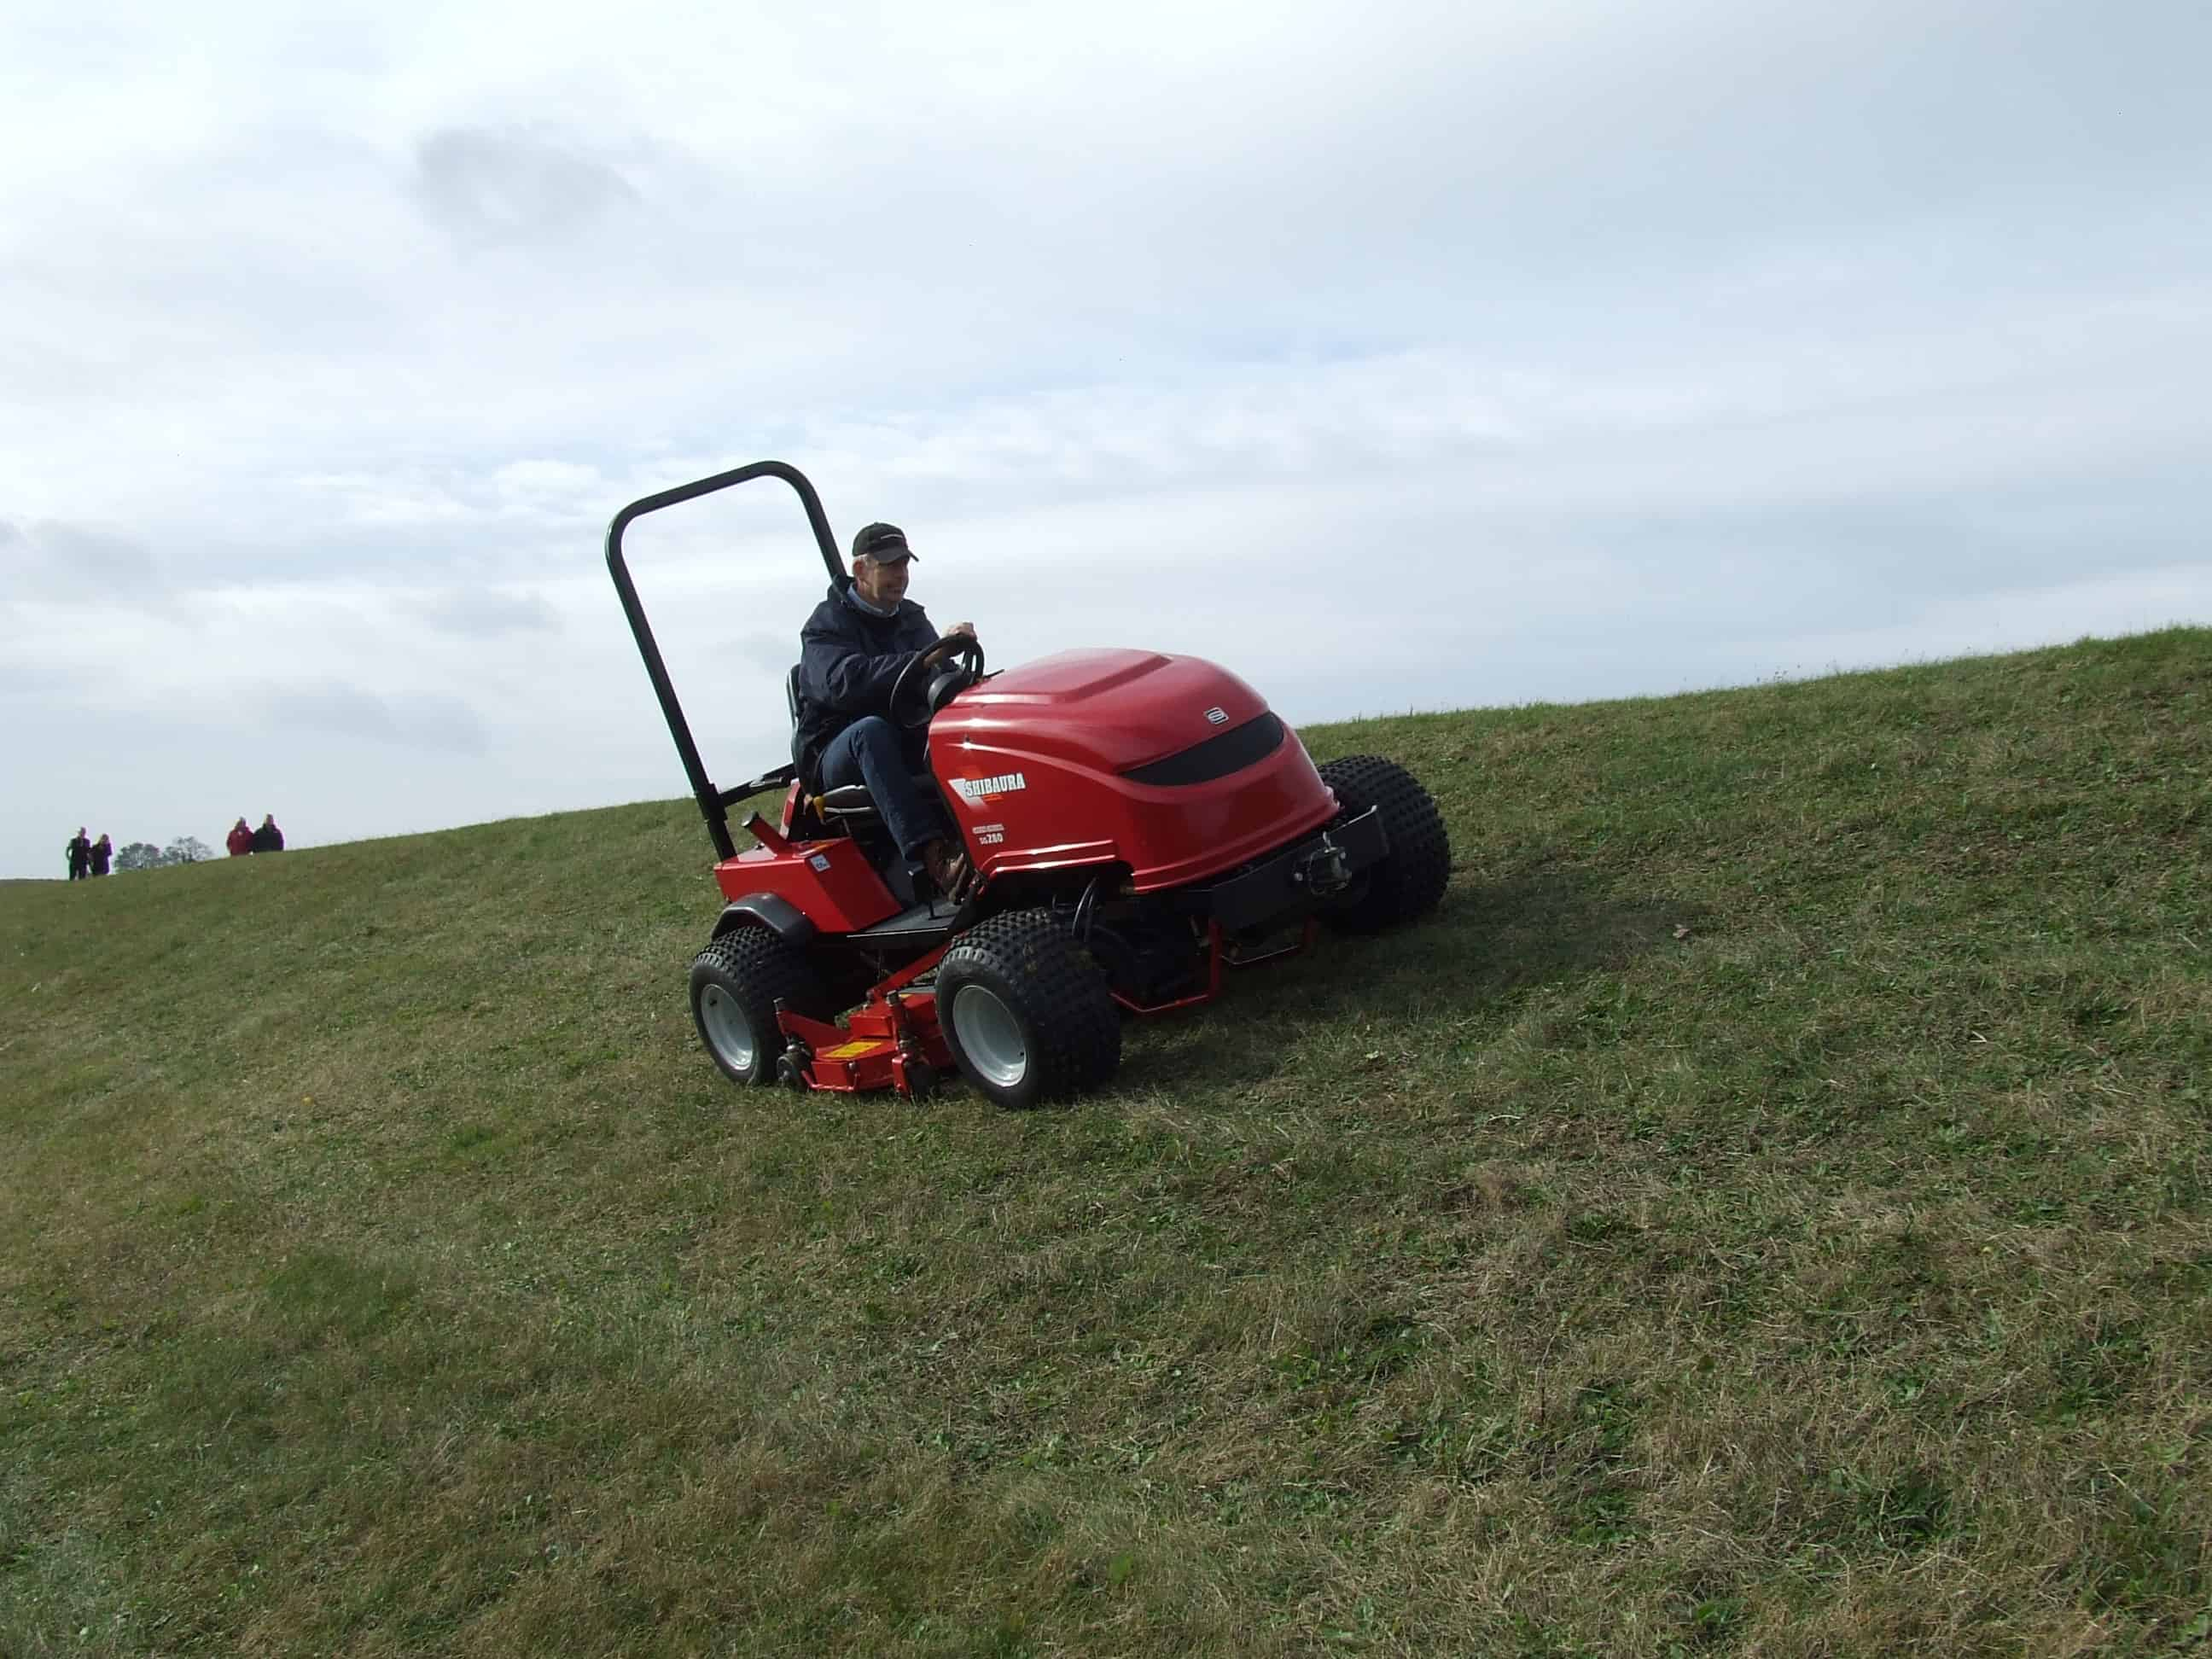 contractor weedfree purchase multi functional shibaura slope mower. Black Bedroom Furniture Sets. Home Design Ideas